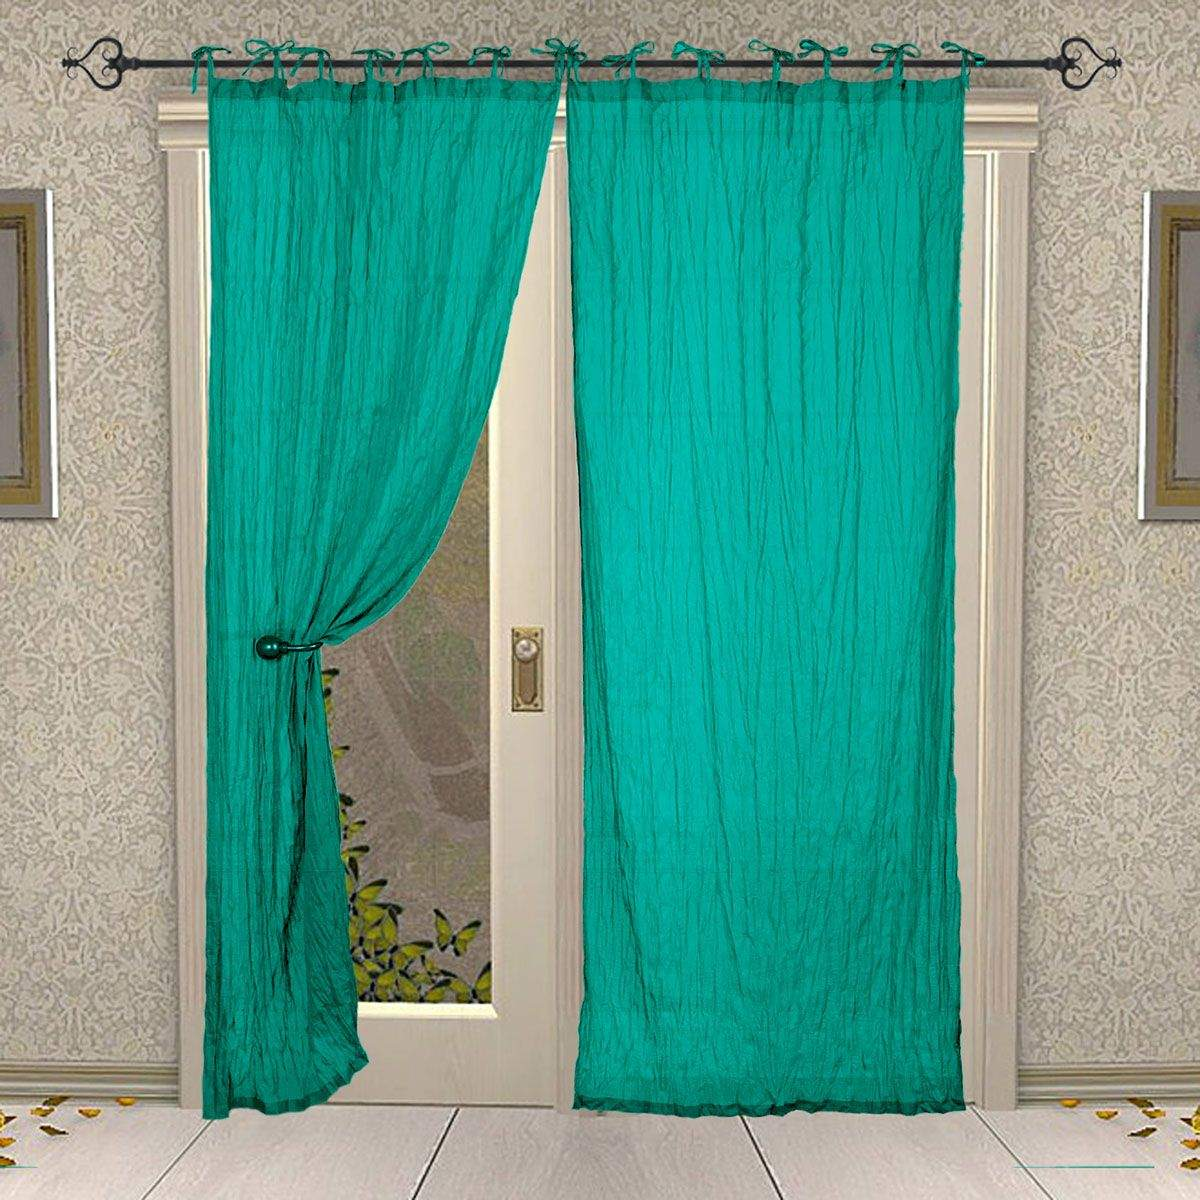 Tie Top Cotton Plain Solid Turquoise Curtain for Windows and Door